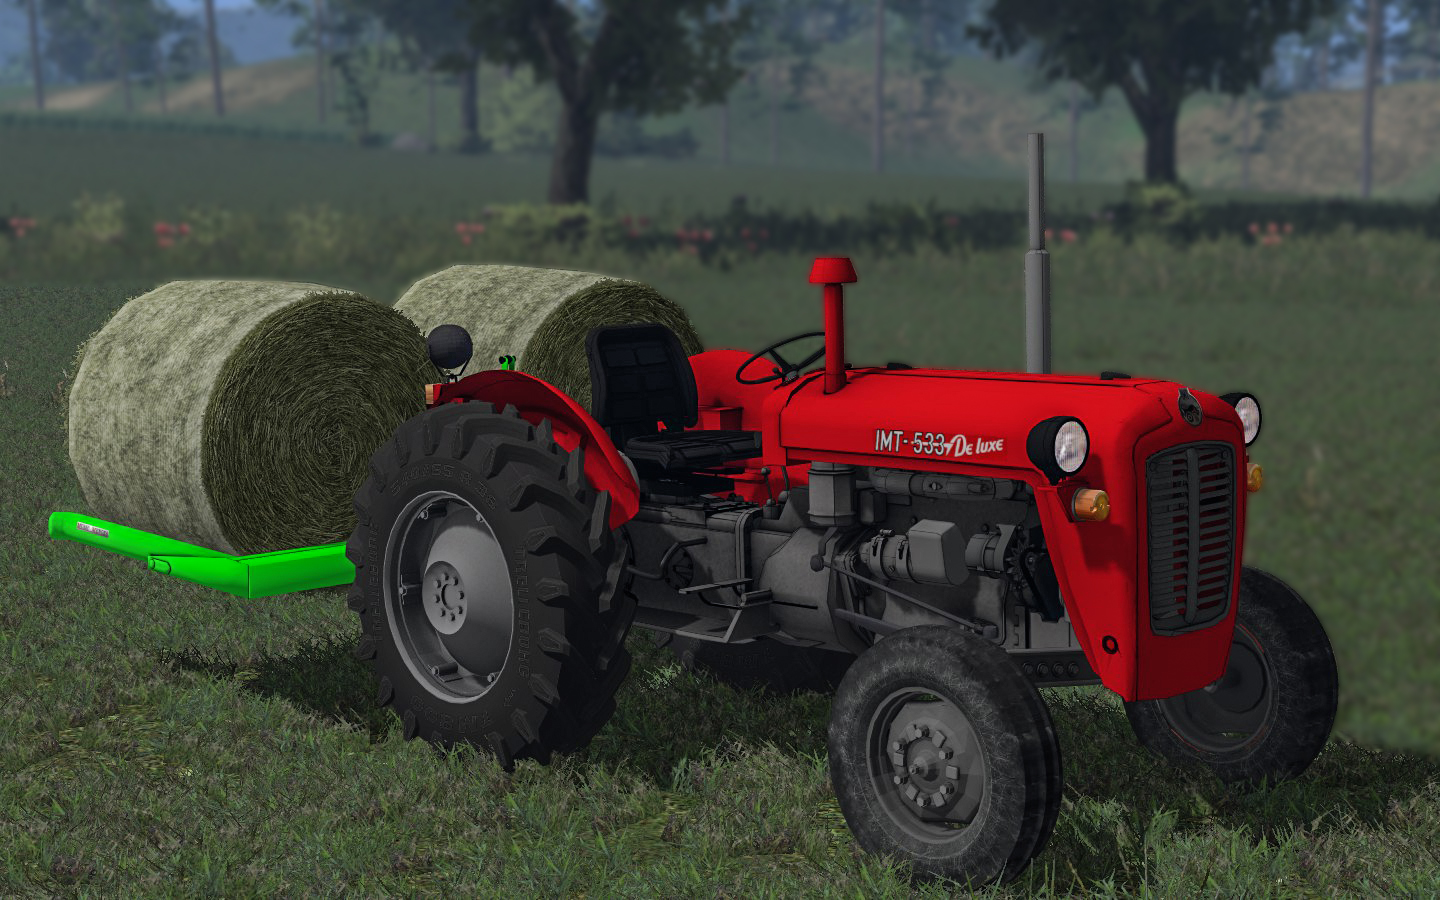 IMT 533 DeLuxe - Farming simulator modification - FarmingMod com